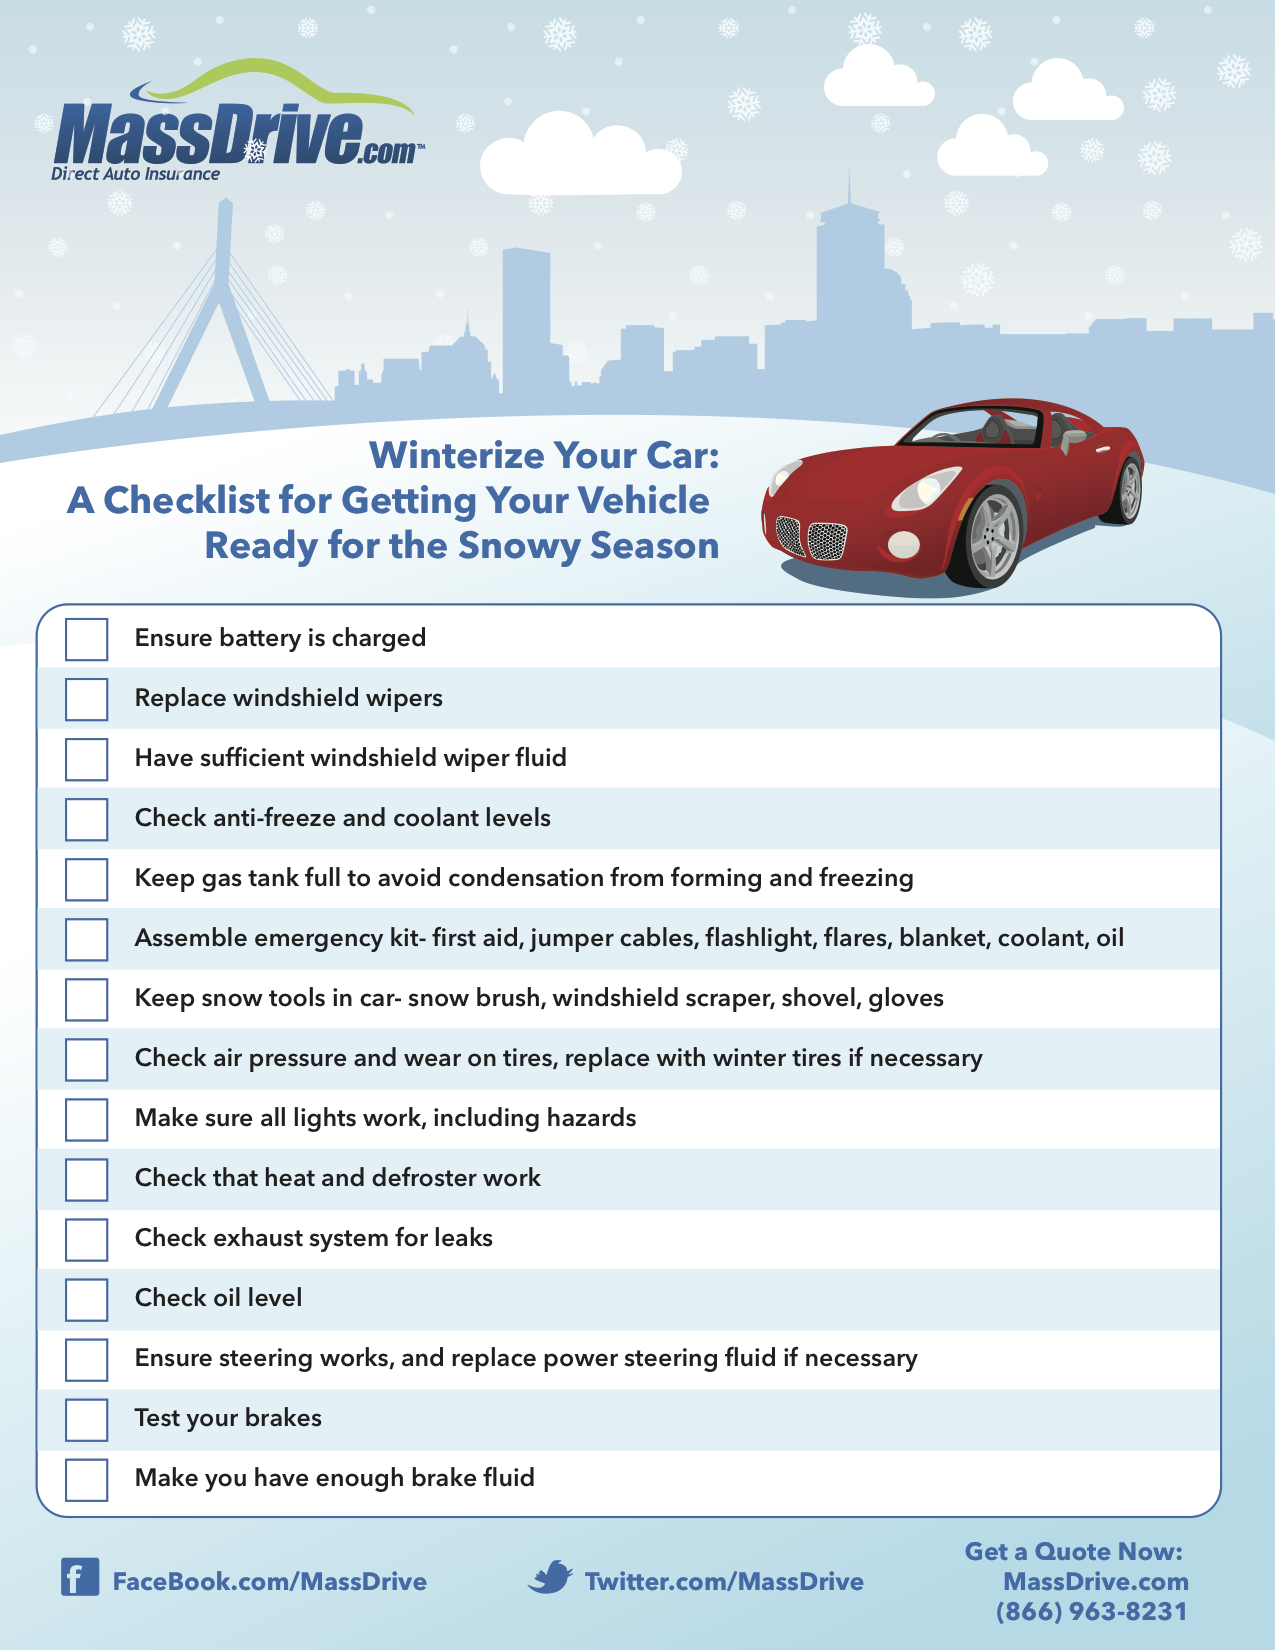 Winterize Your Car: A Checklist for Getting Your Vehicle Ready for ...